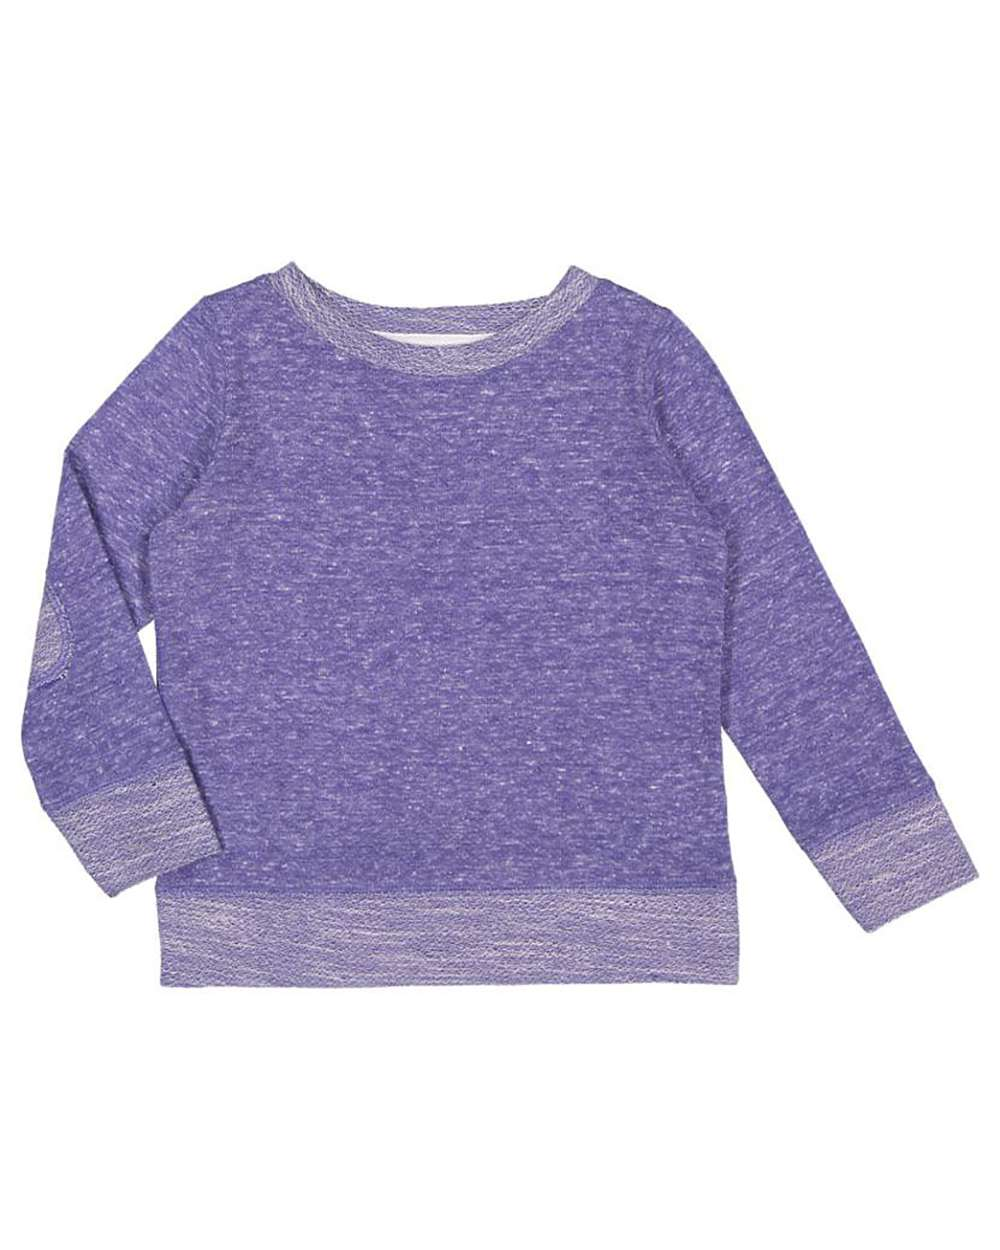 Rabbit Skins Toddler Harborside M/élange French Terry Long Sleeve Crew Neck with Elbow Patches